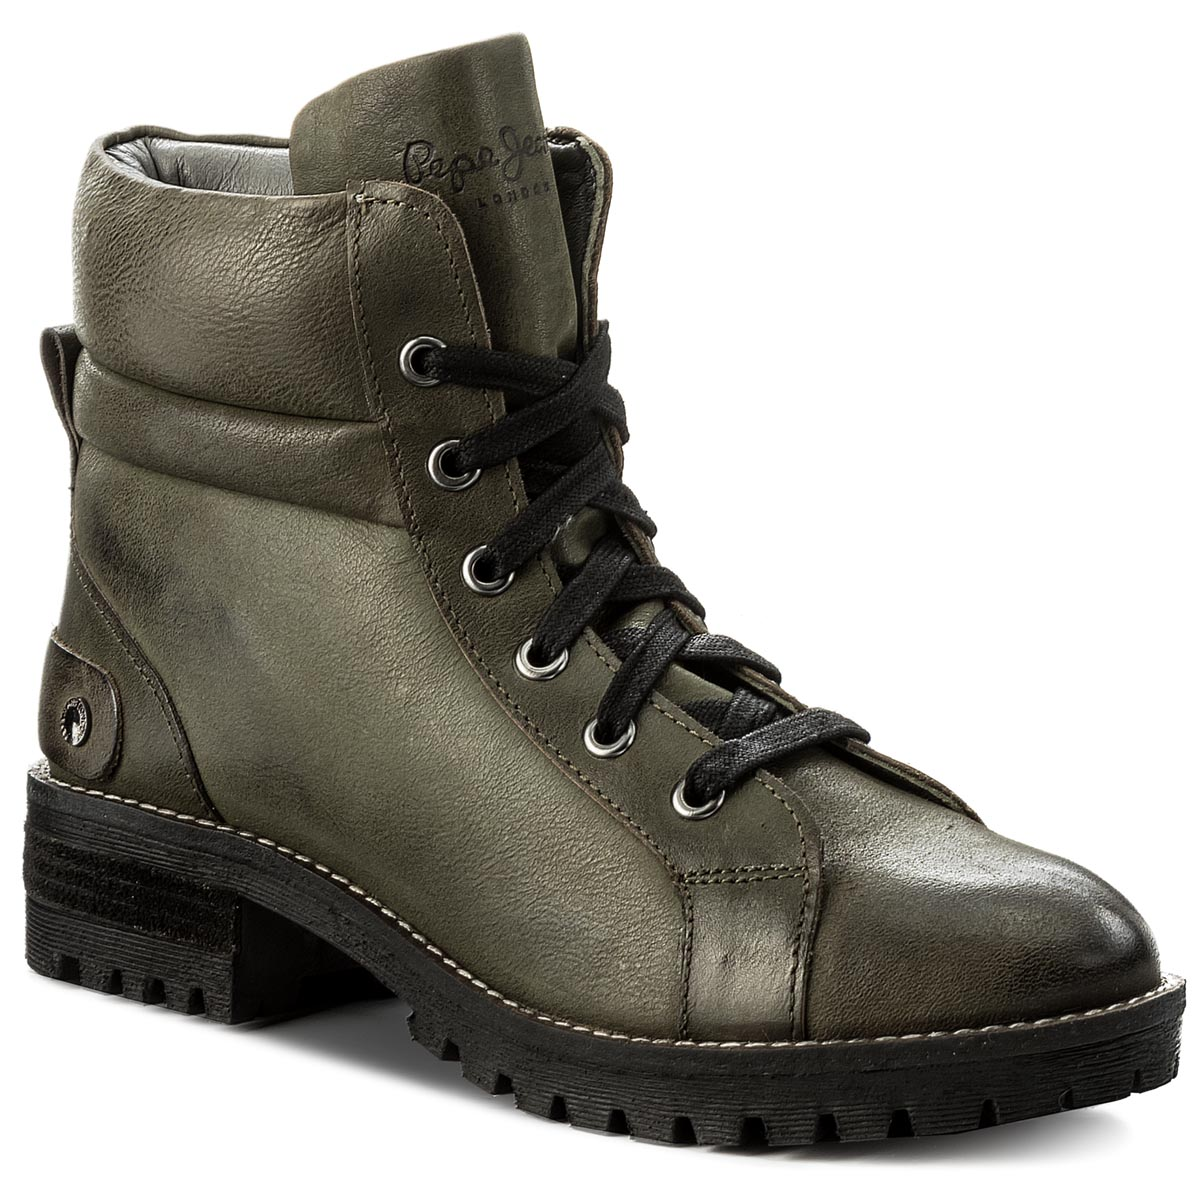 Trapery PEPE JEANS - Hellen Laces PLS50300 Military Green 679